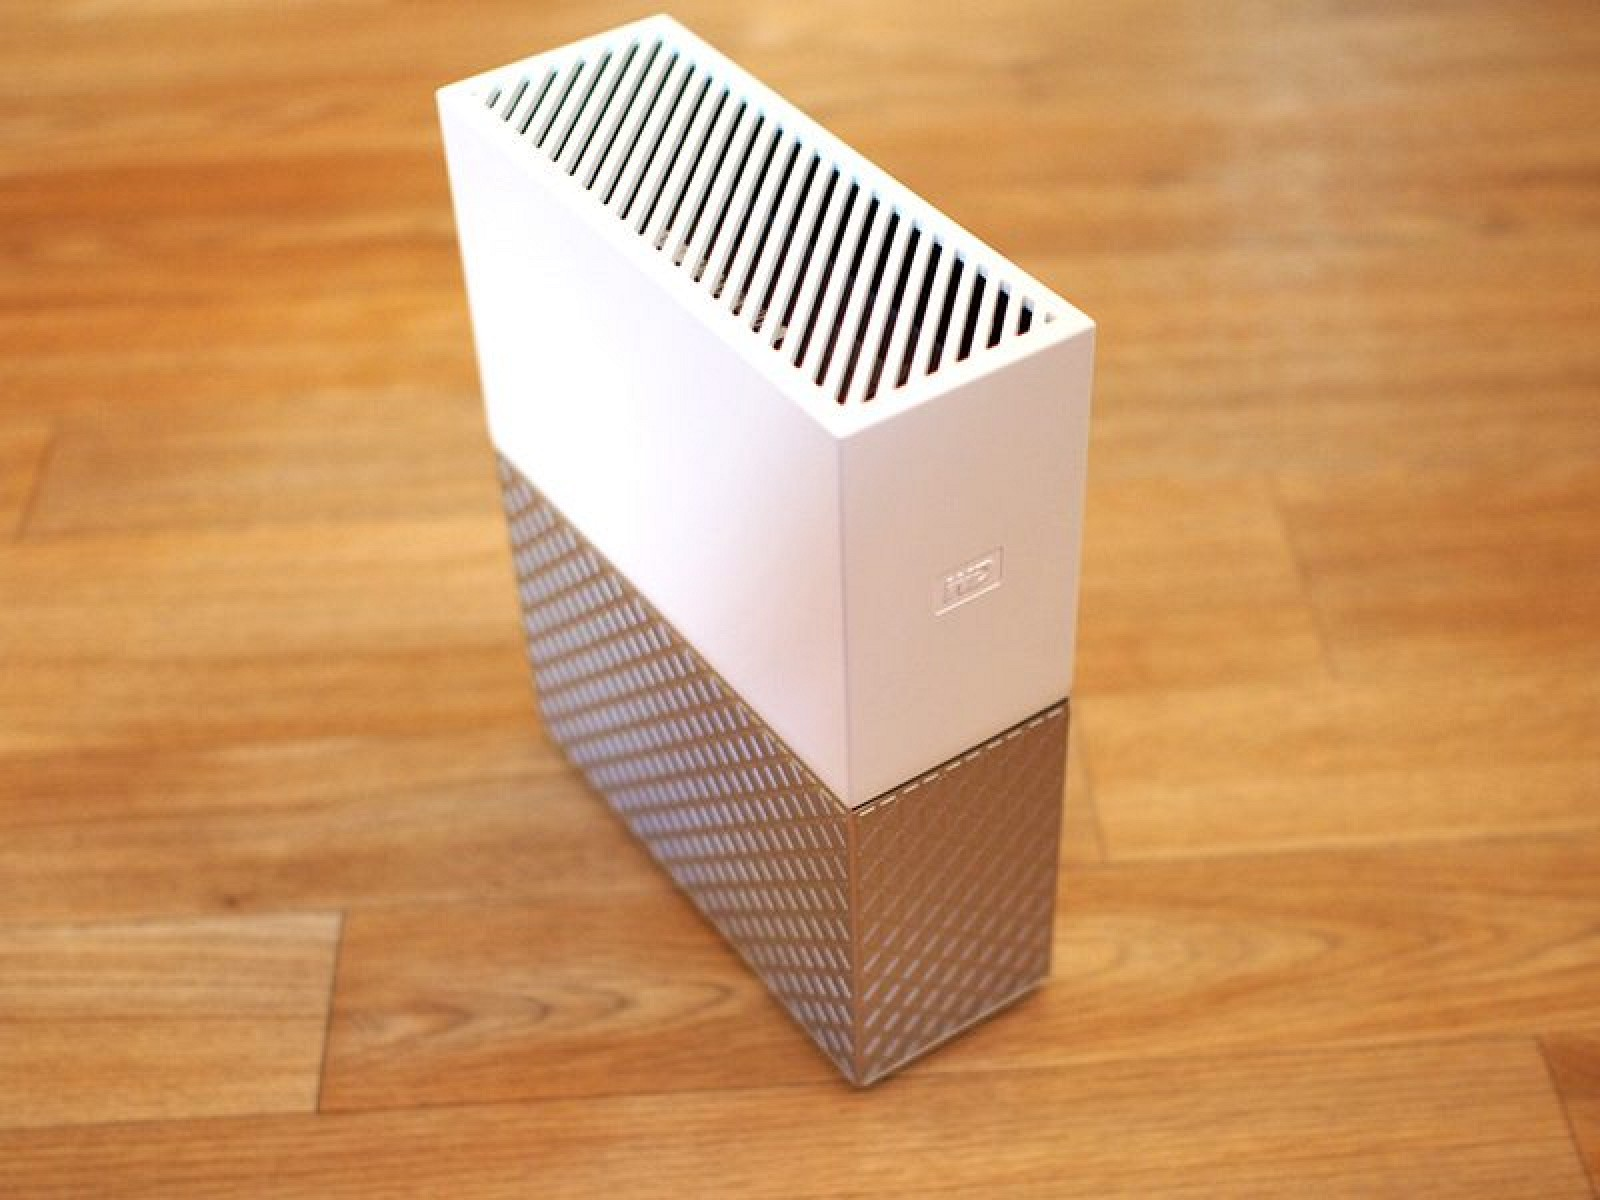 western digital s my cloud home is easy to use but apps need